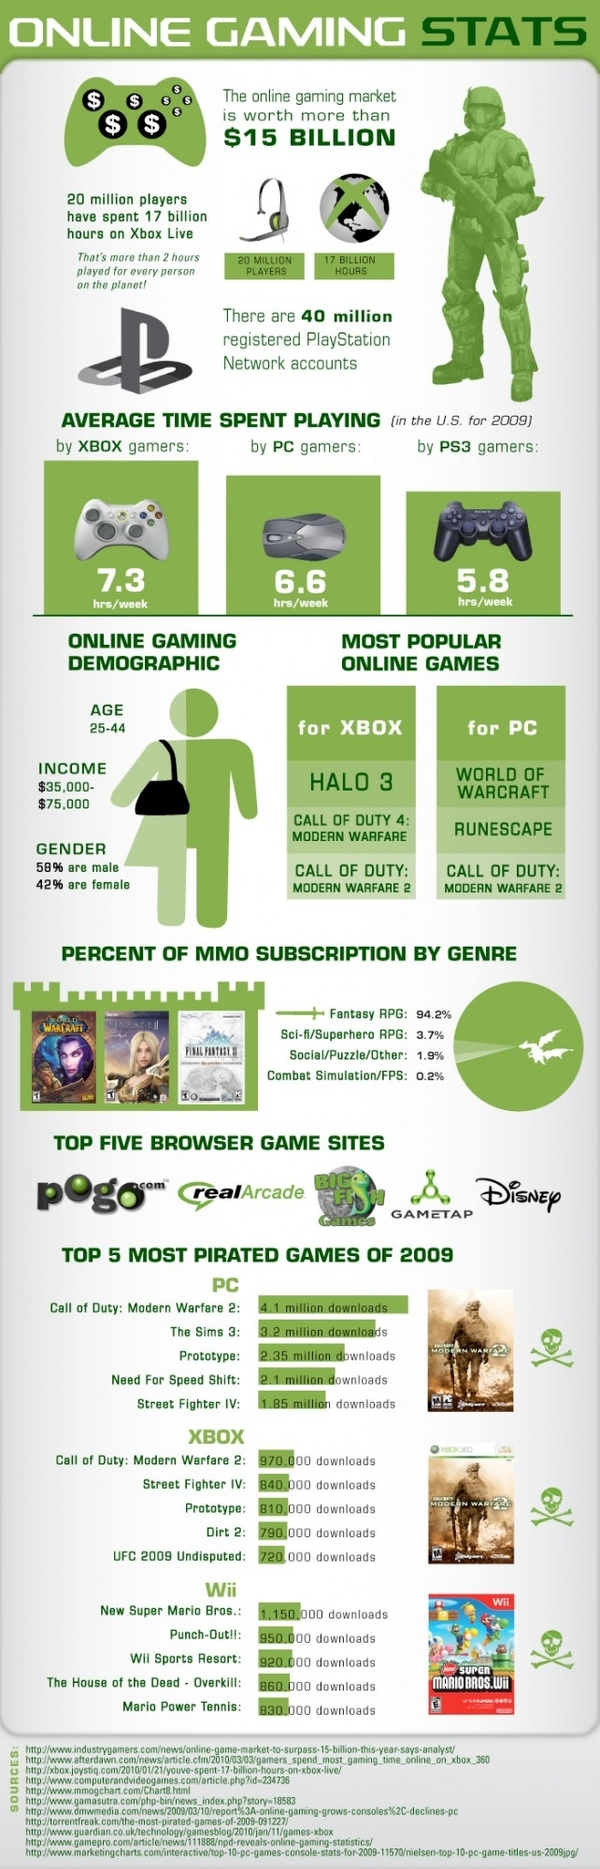 Online Gaming Infographic